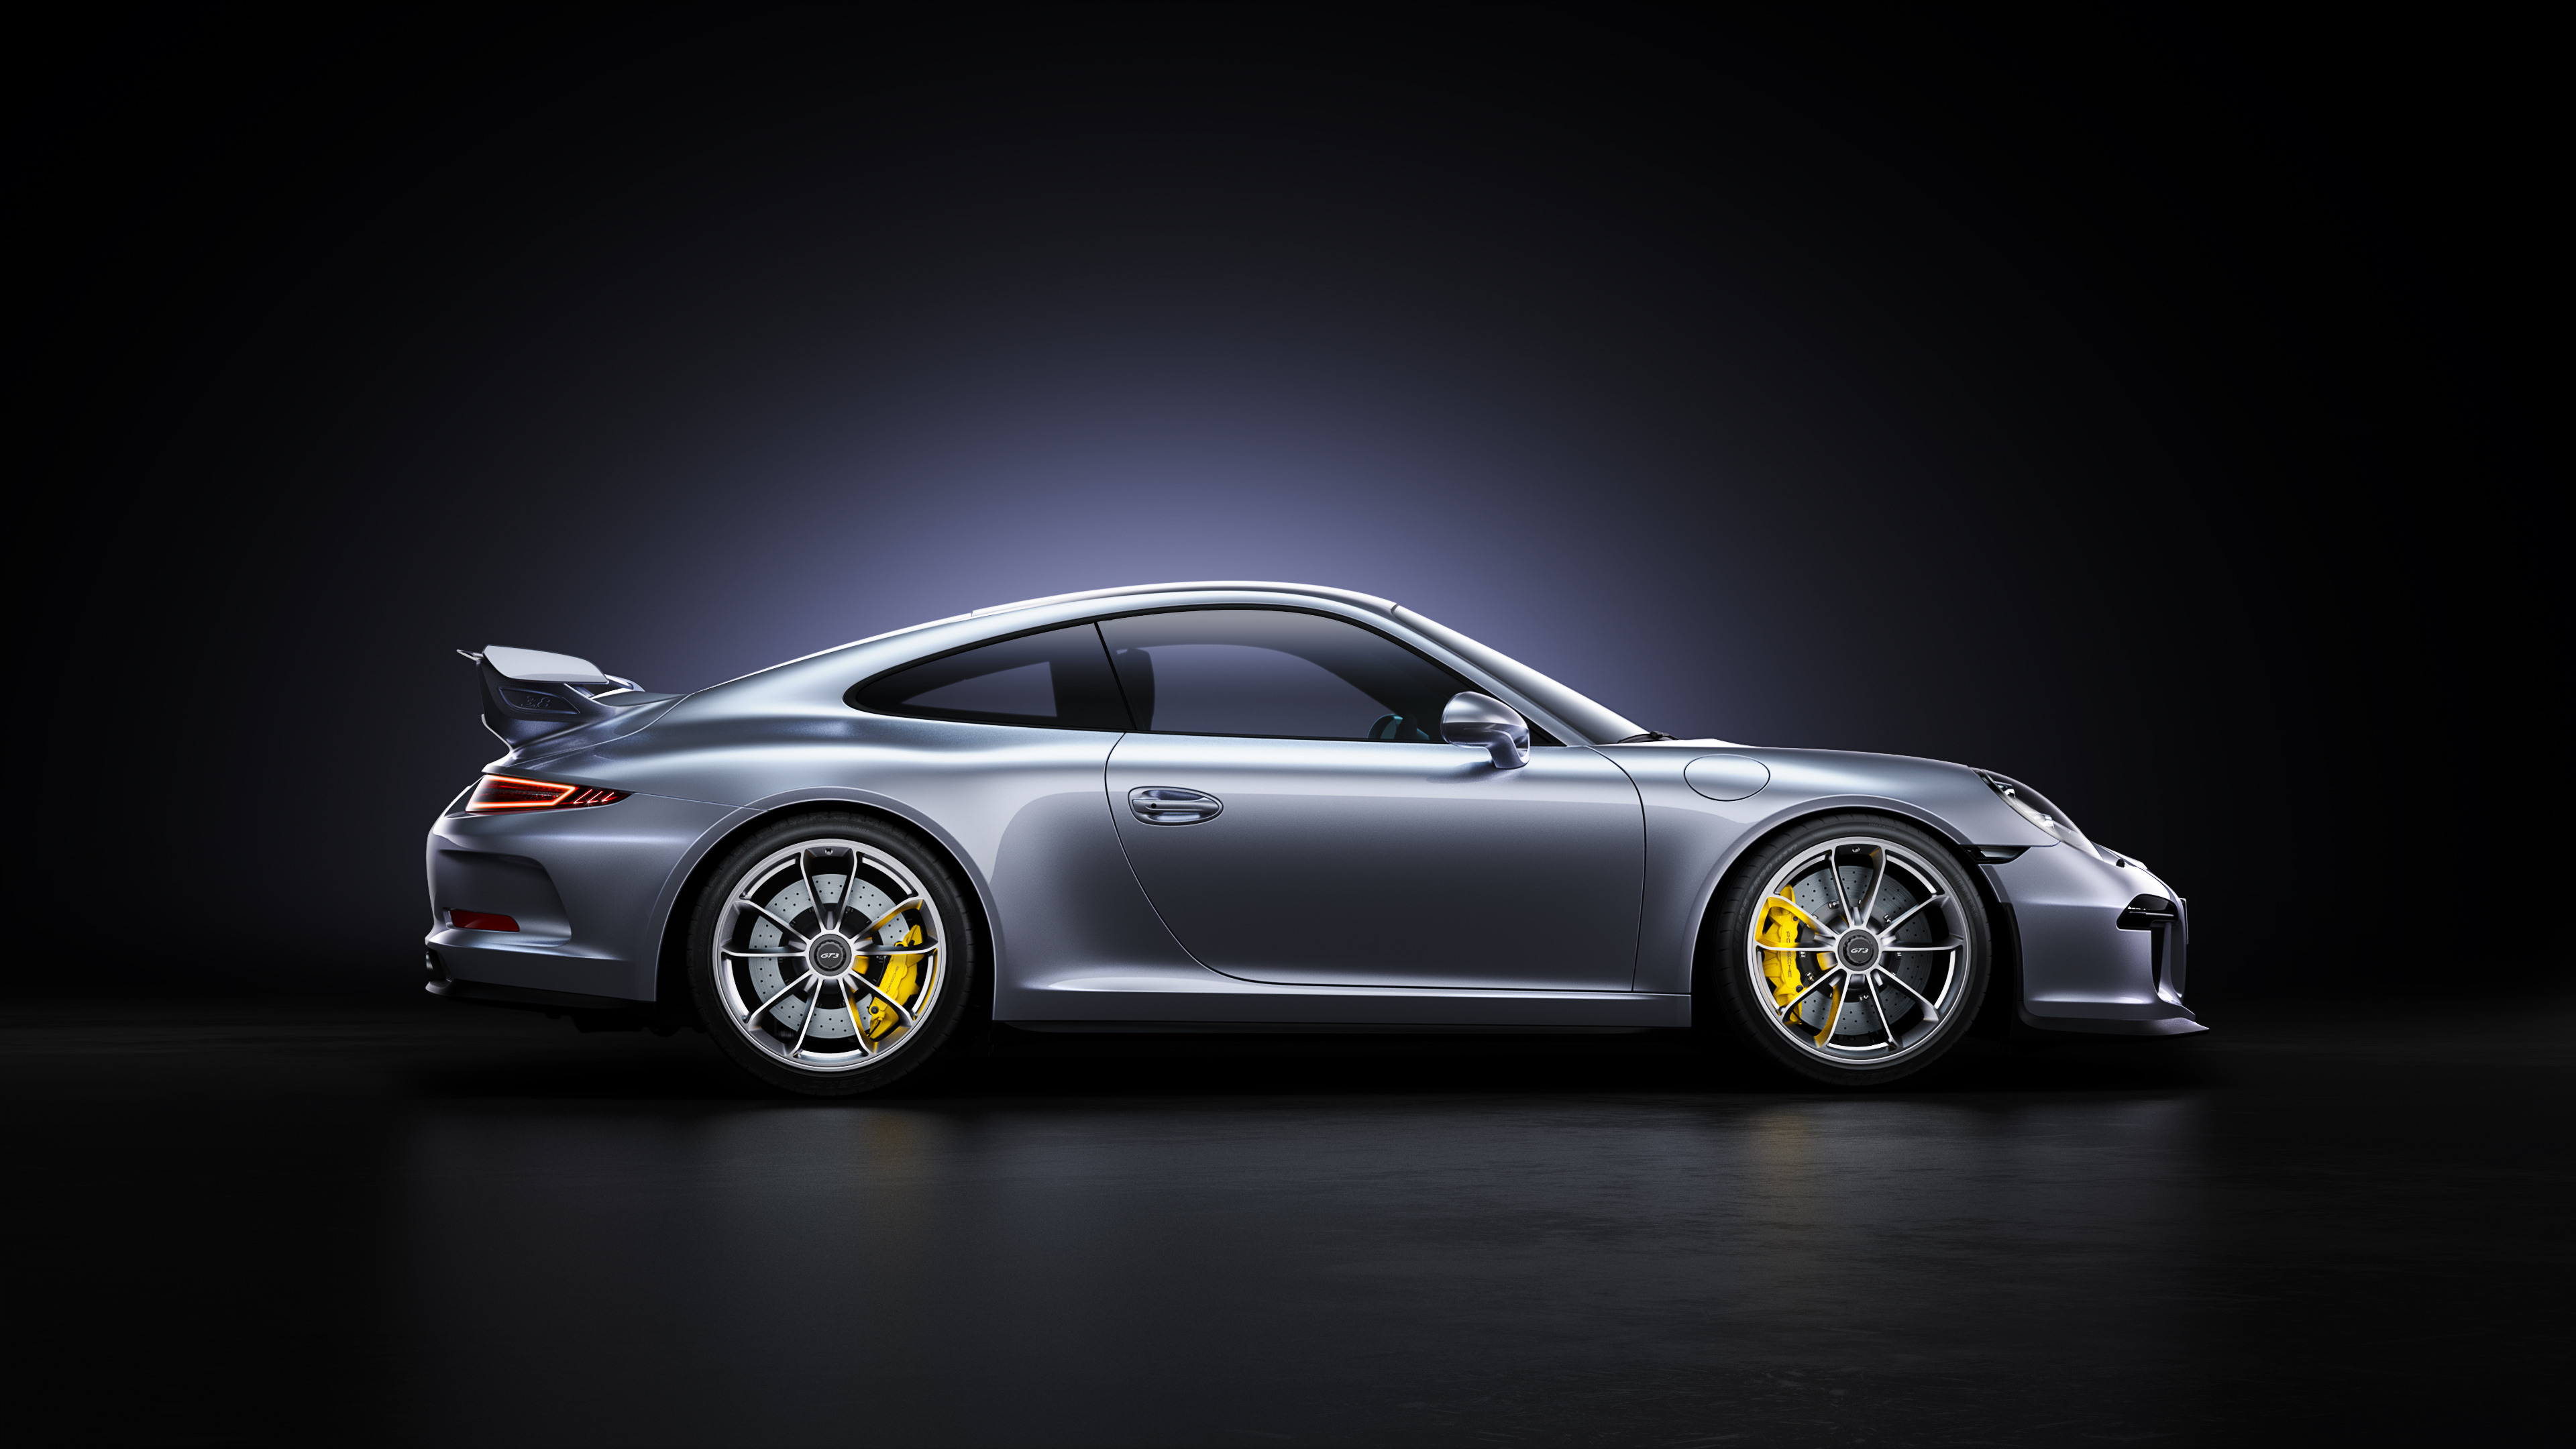 Porsche 911 GT3 4k, HD Cars, 4k Wallpapers, Images